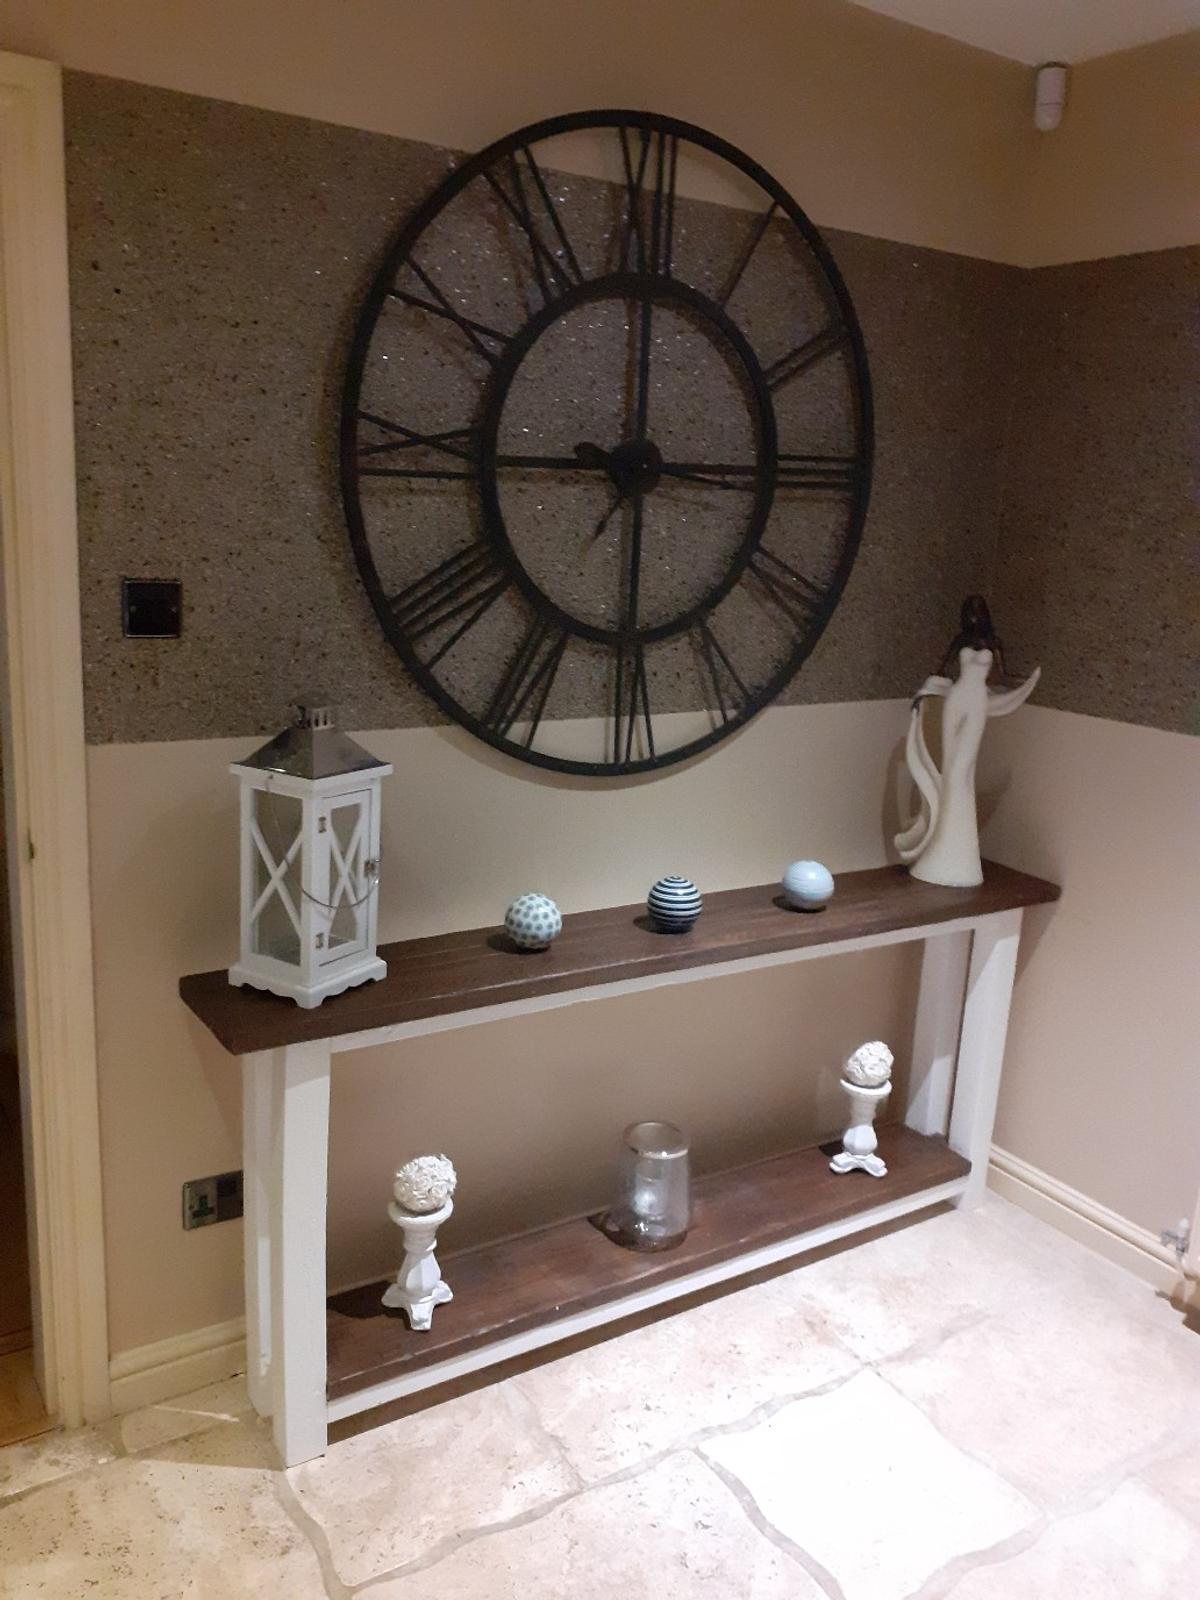 Large clock 114cm diameter  side table on separate listing